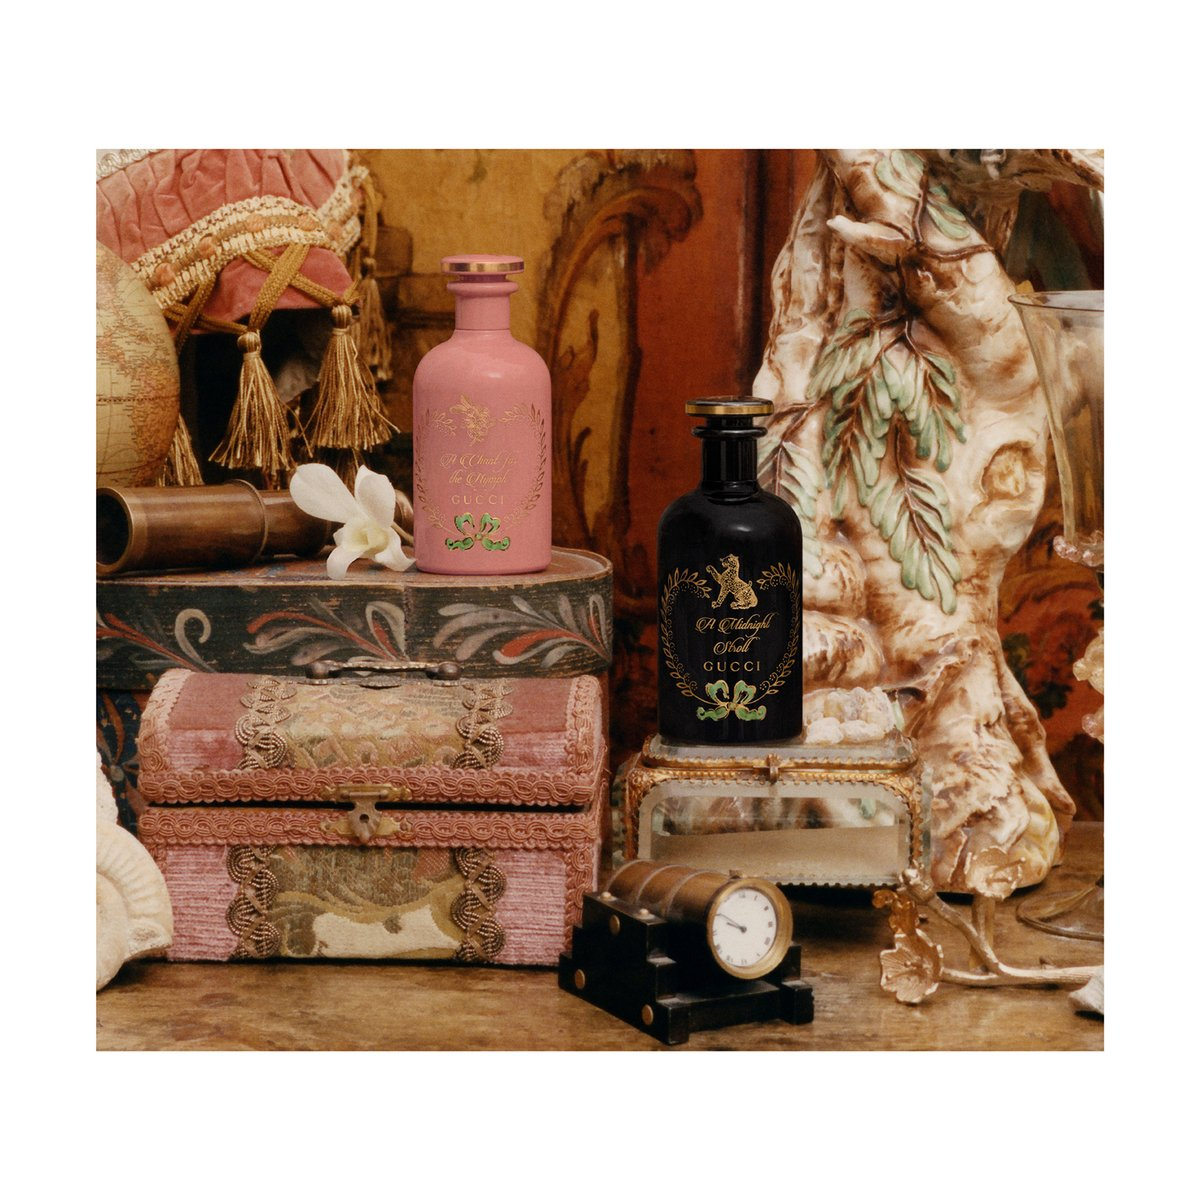 Joining #GucciBeauty's #TheAlchemistsGarden collection are new scents 'A Midnight Stroll' and 'A Chant for the Nymph'—both possessing the power to transport the imagination to emotions connected with their hero ingredient: Incense and Frangipani flower. https://on.gucci.com/_thealchemistgarden2020… pic.twitter.com/q5PU4Fv4TB